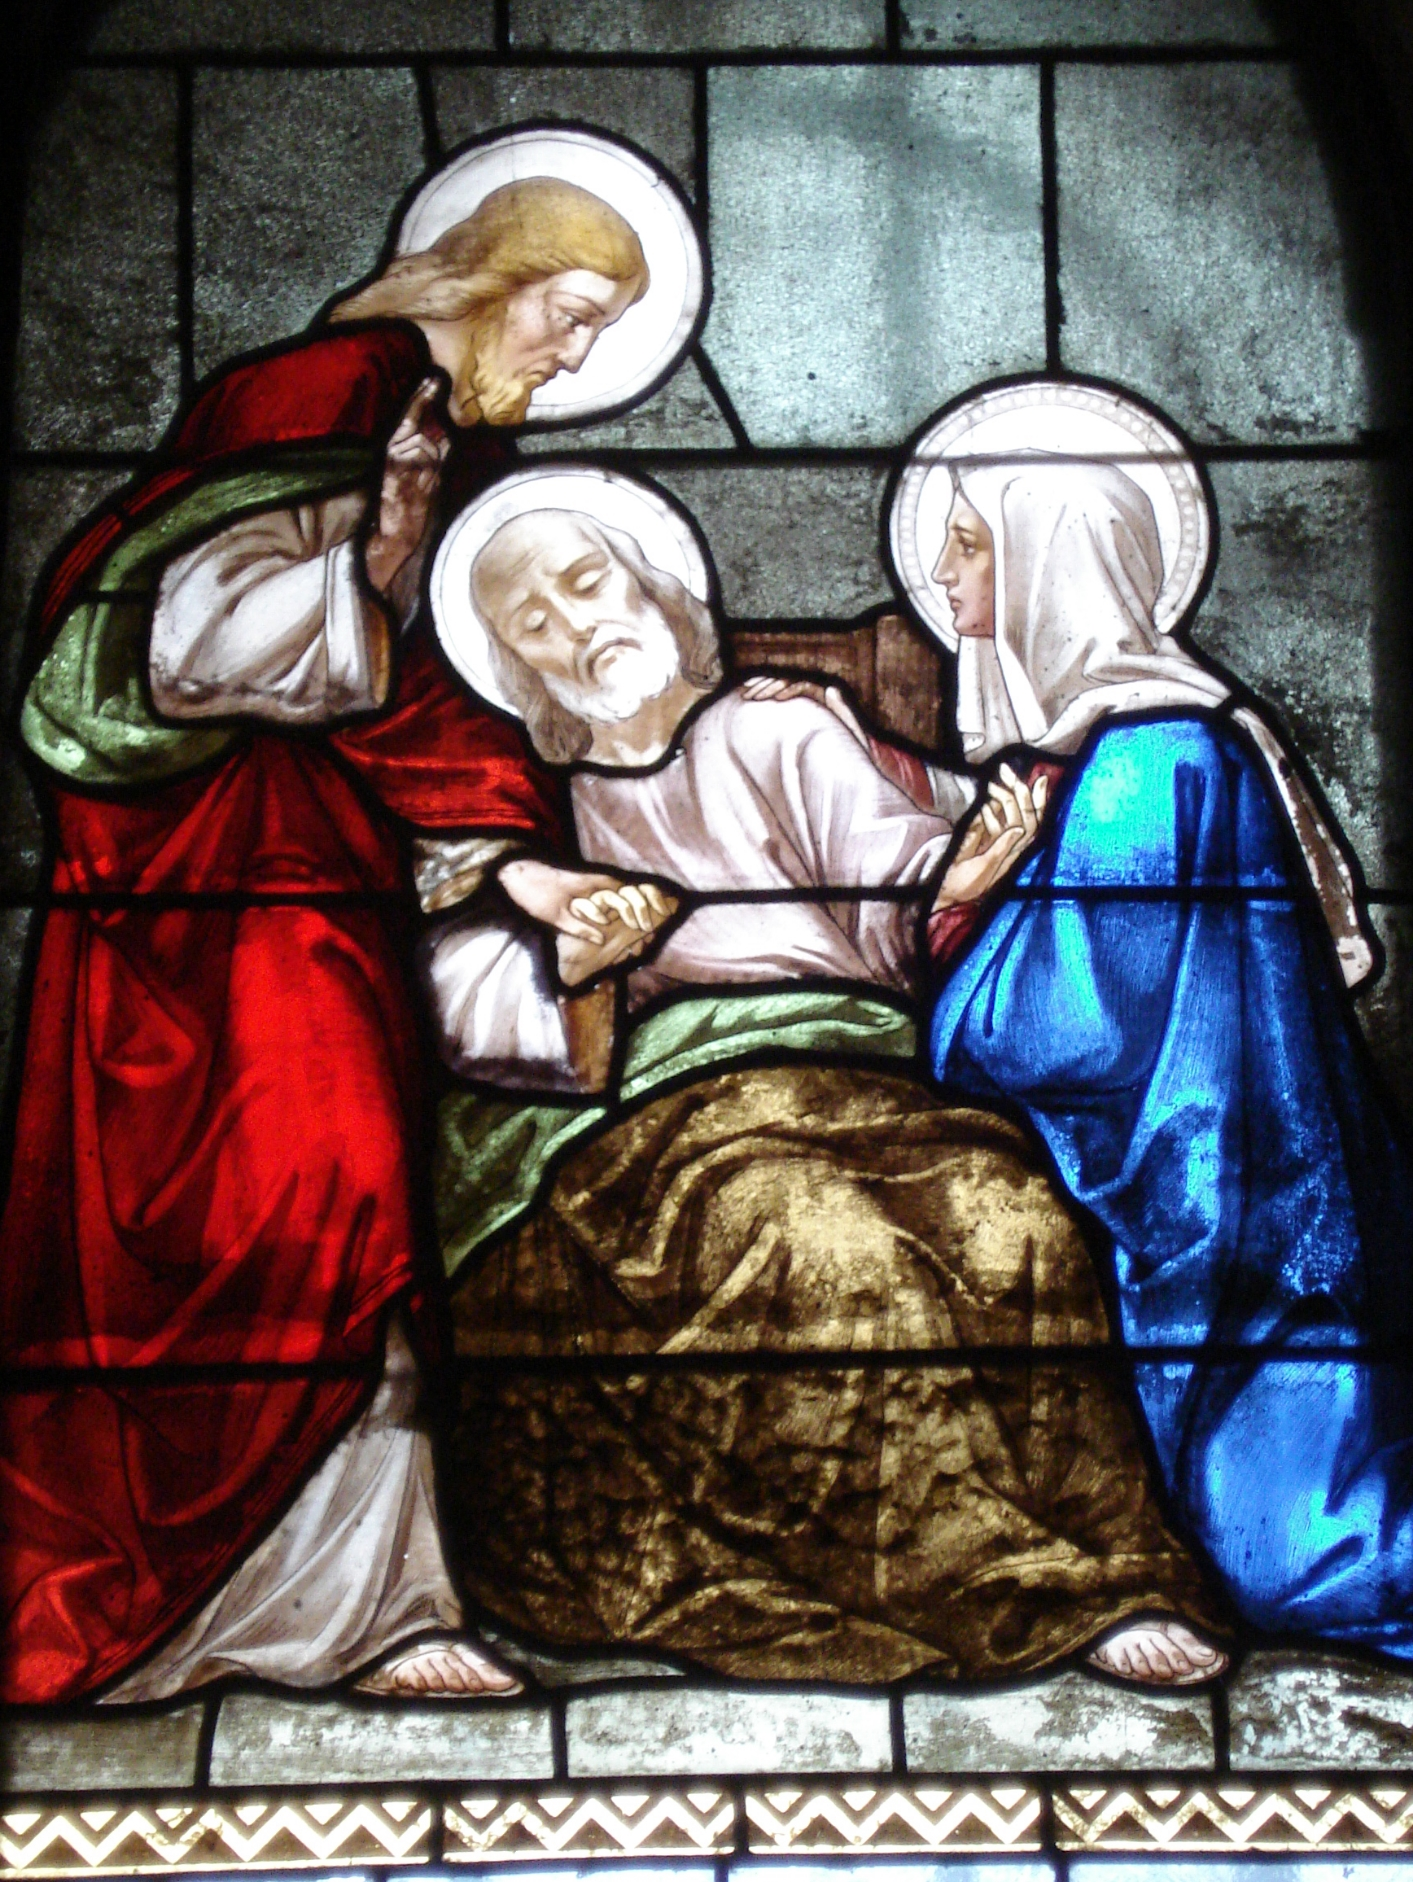 The death of St. Joseph, comforted by Mary and Jesus - window in Nazareth, Israel